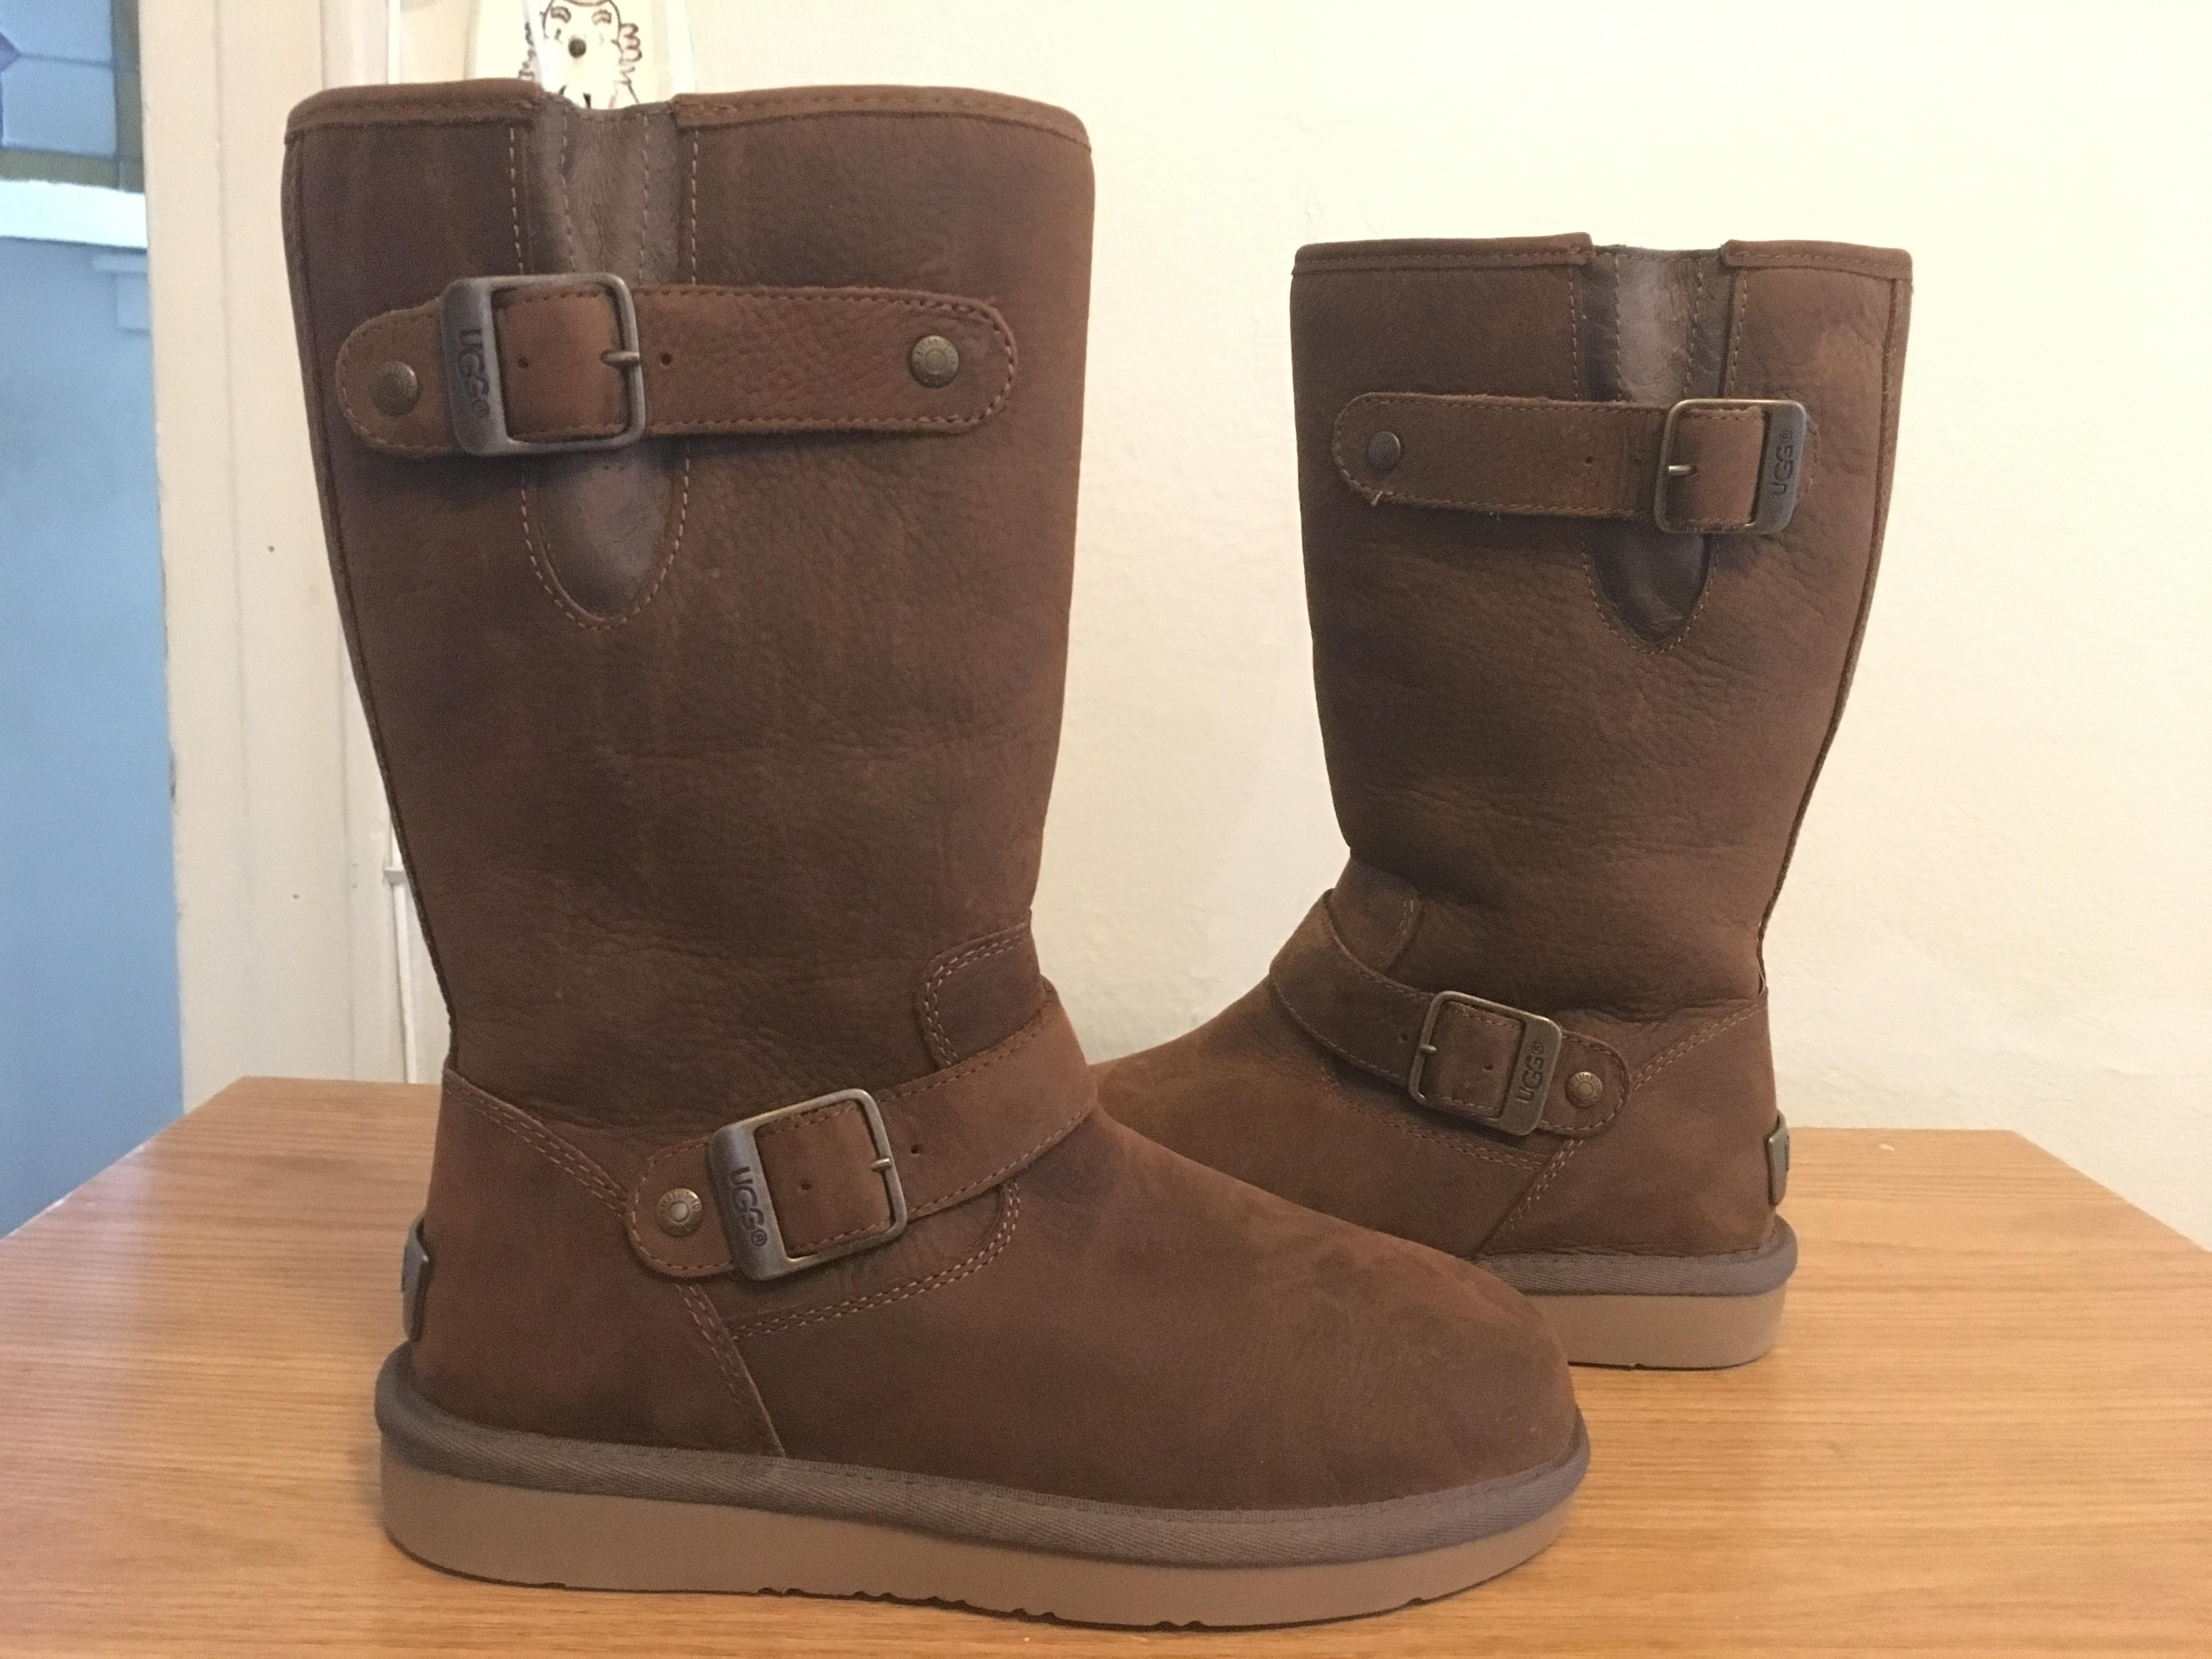 211dfcc1a0f3 ... top quality ugg australia water resistant uggpure wool lining leather  upper toast boots 0656b d7dff